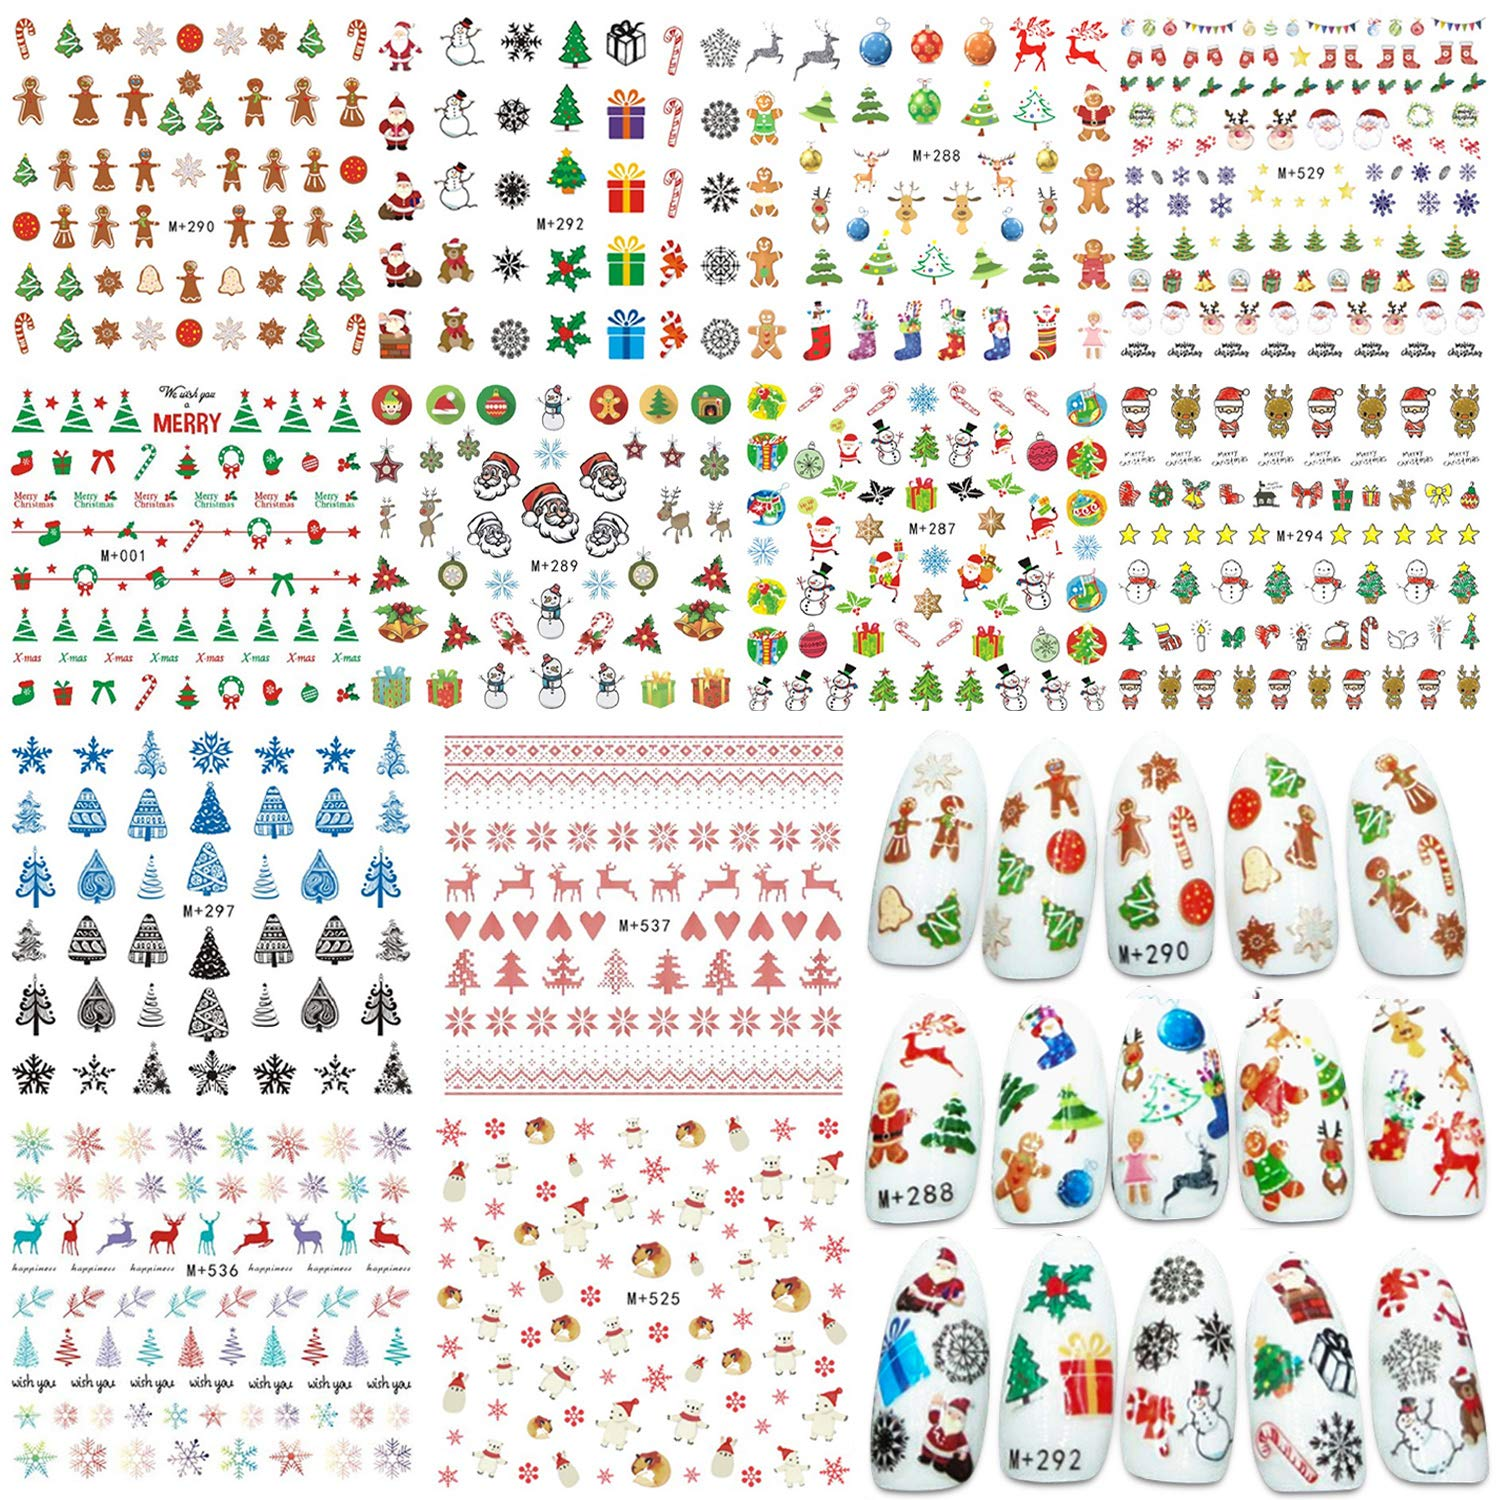 Whaline 12 Sheets Christmas Nail Art Water Transfer Stickers Santa Claus Reindeer Xmas Tree Decals for Women Girls Kids Manicure DIY or Nail Salon